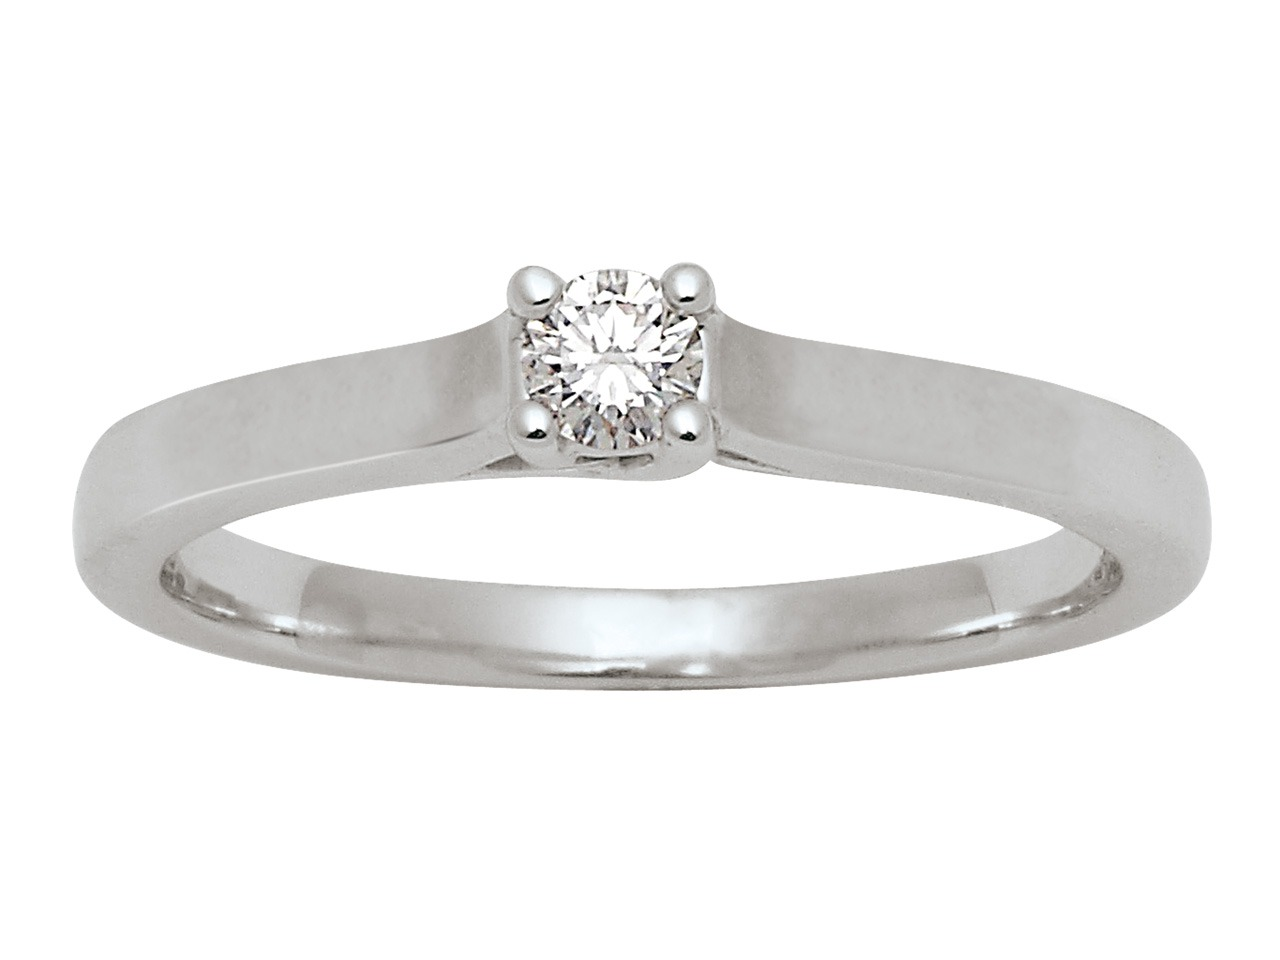 Bague Solitaire, Or gris 18k, diamants 0,10 ct, doigt 54